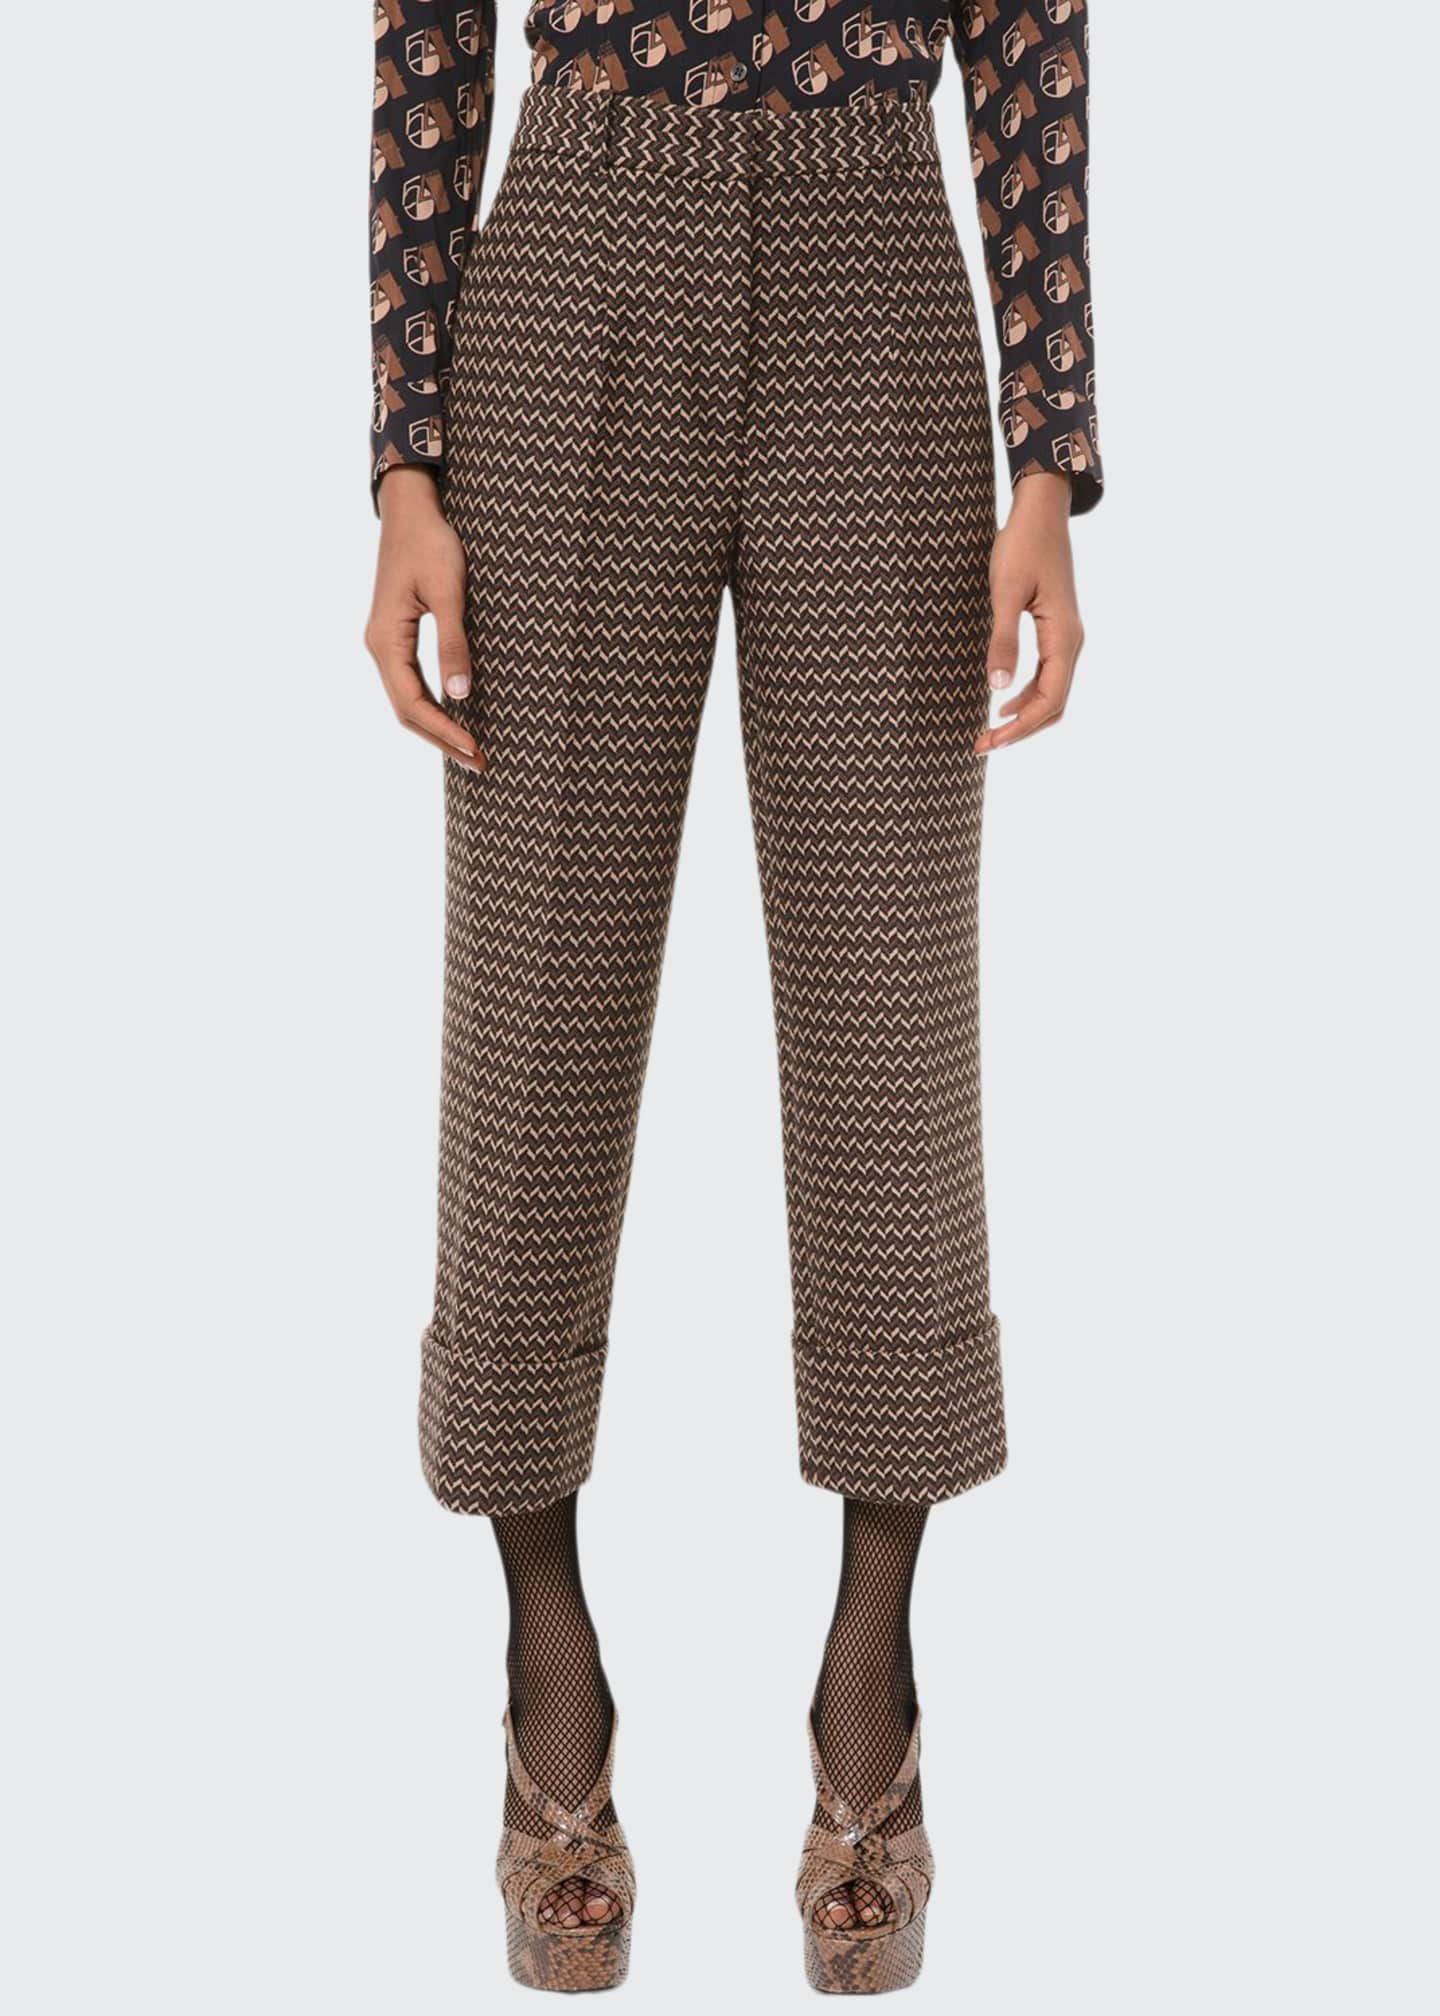 Michael Kors Collection Chevron Cropped Cuffed Pants